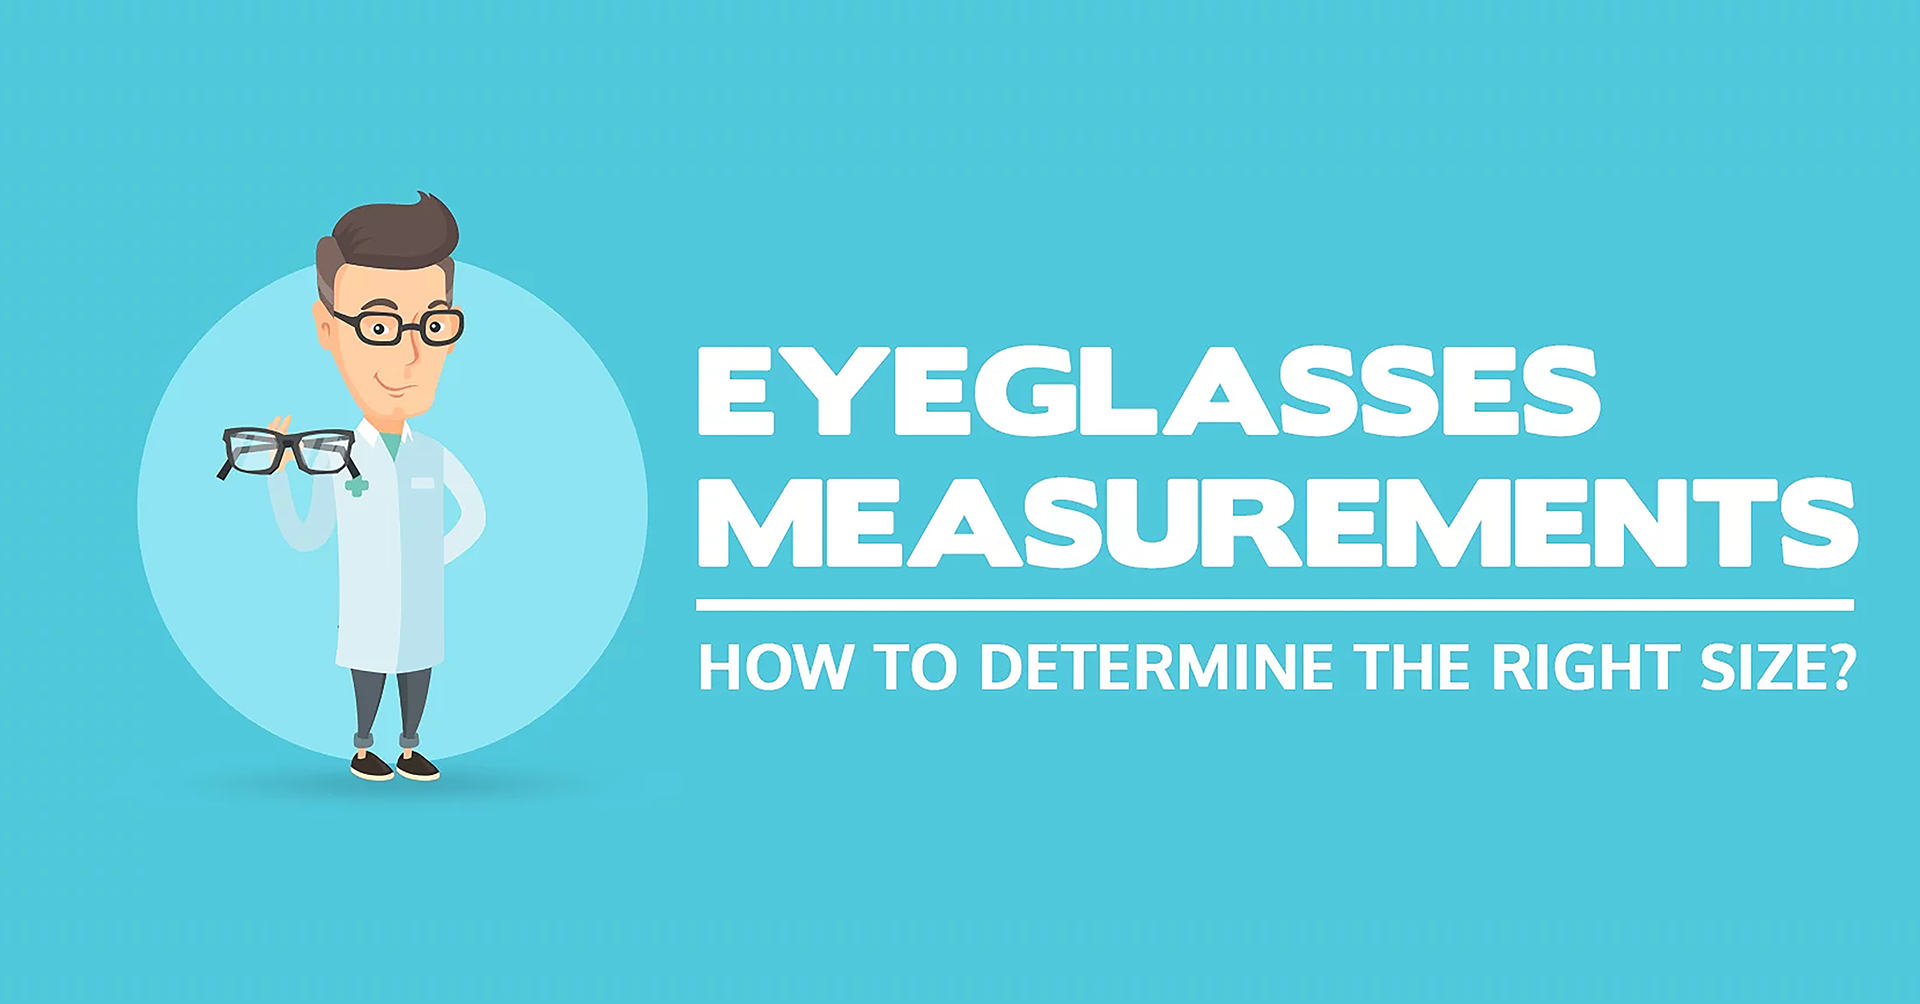 17) EYEGLASSES MEASUREMENTS - HOW TO DETERMINE THE RIGHT SIZE?